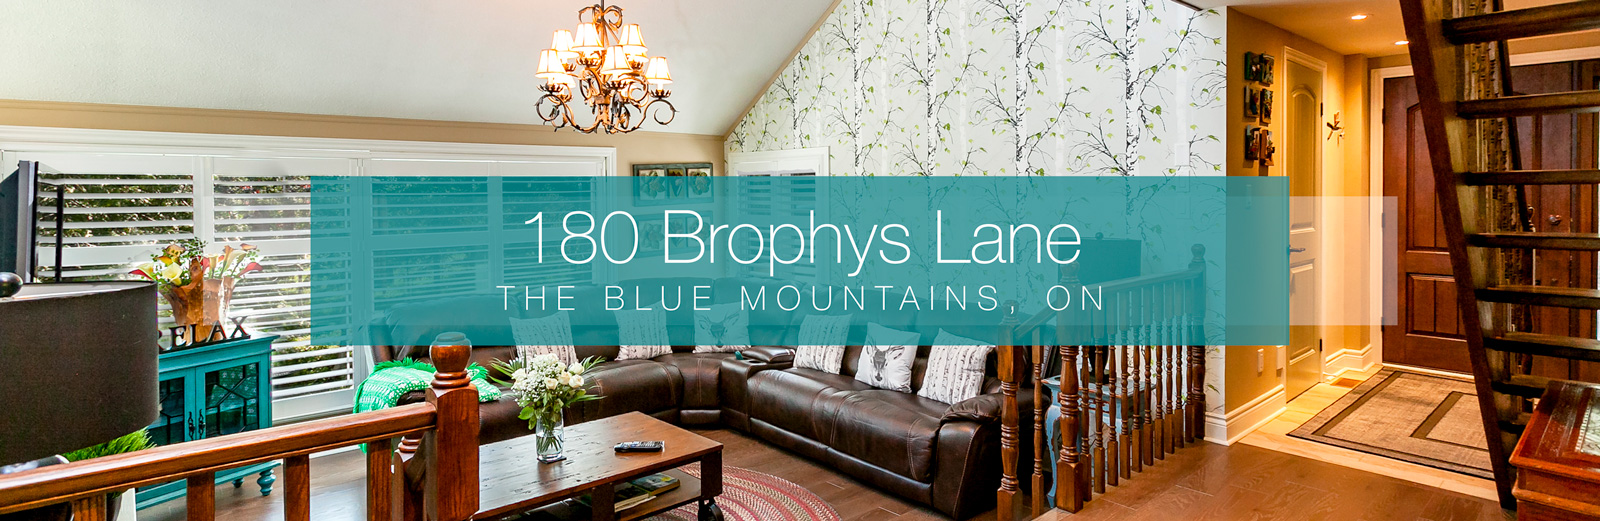 180-brophys-lane-the-blue-mountains-ontario.jpg